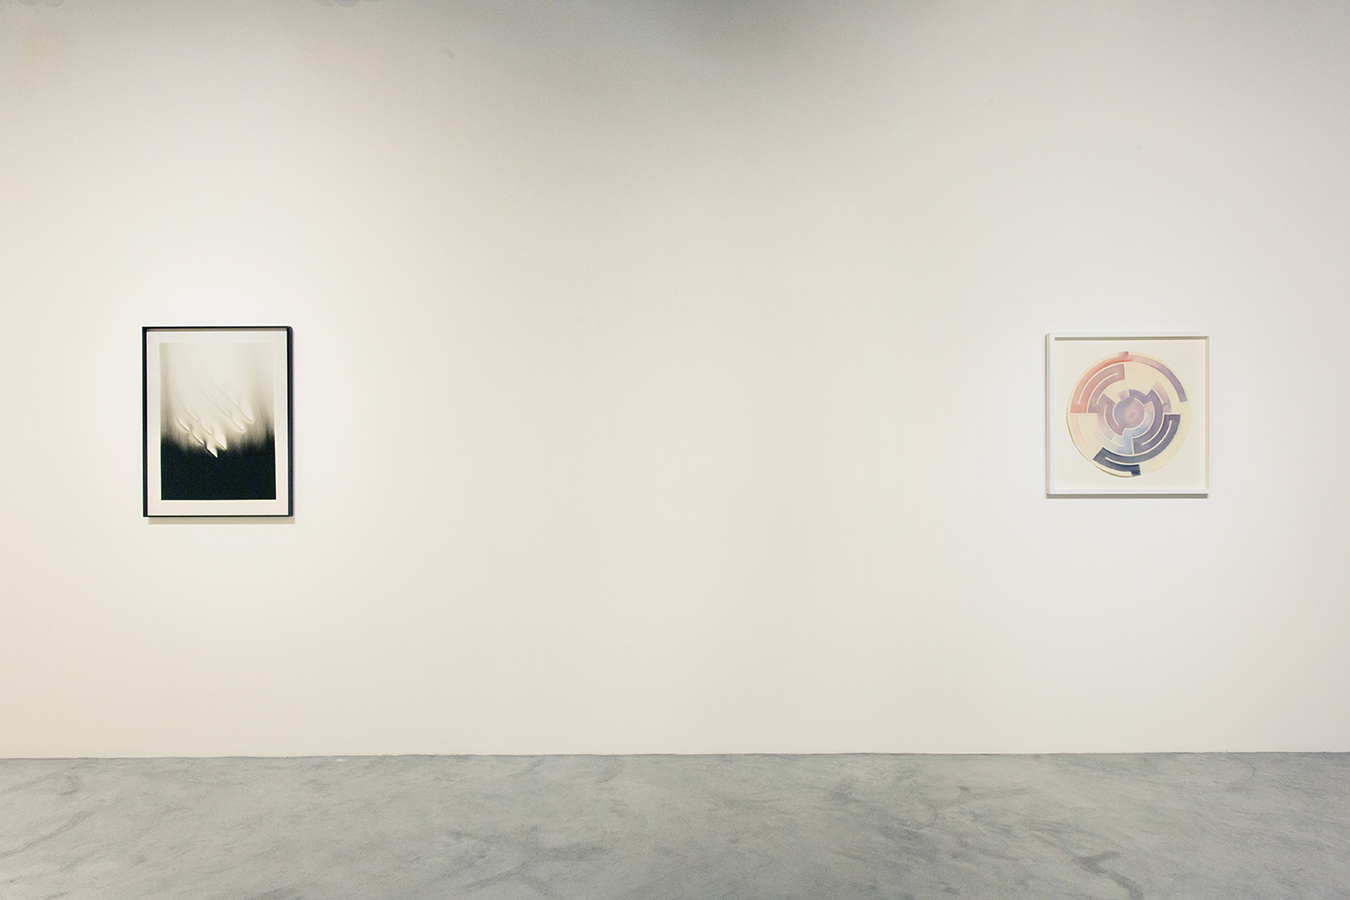 'Everything is and isn't at the Same Time', Installation View at Galerie Huit, Hong Kong, 2016 | Troika (Sebastien Noel, Eva Rucki, Conny Freyer)